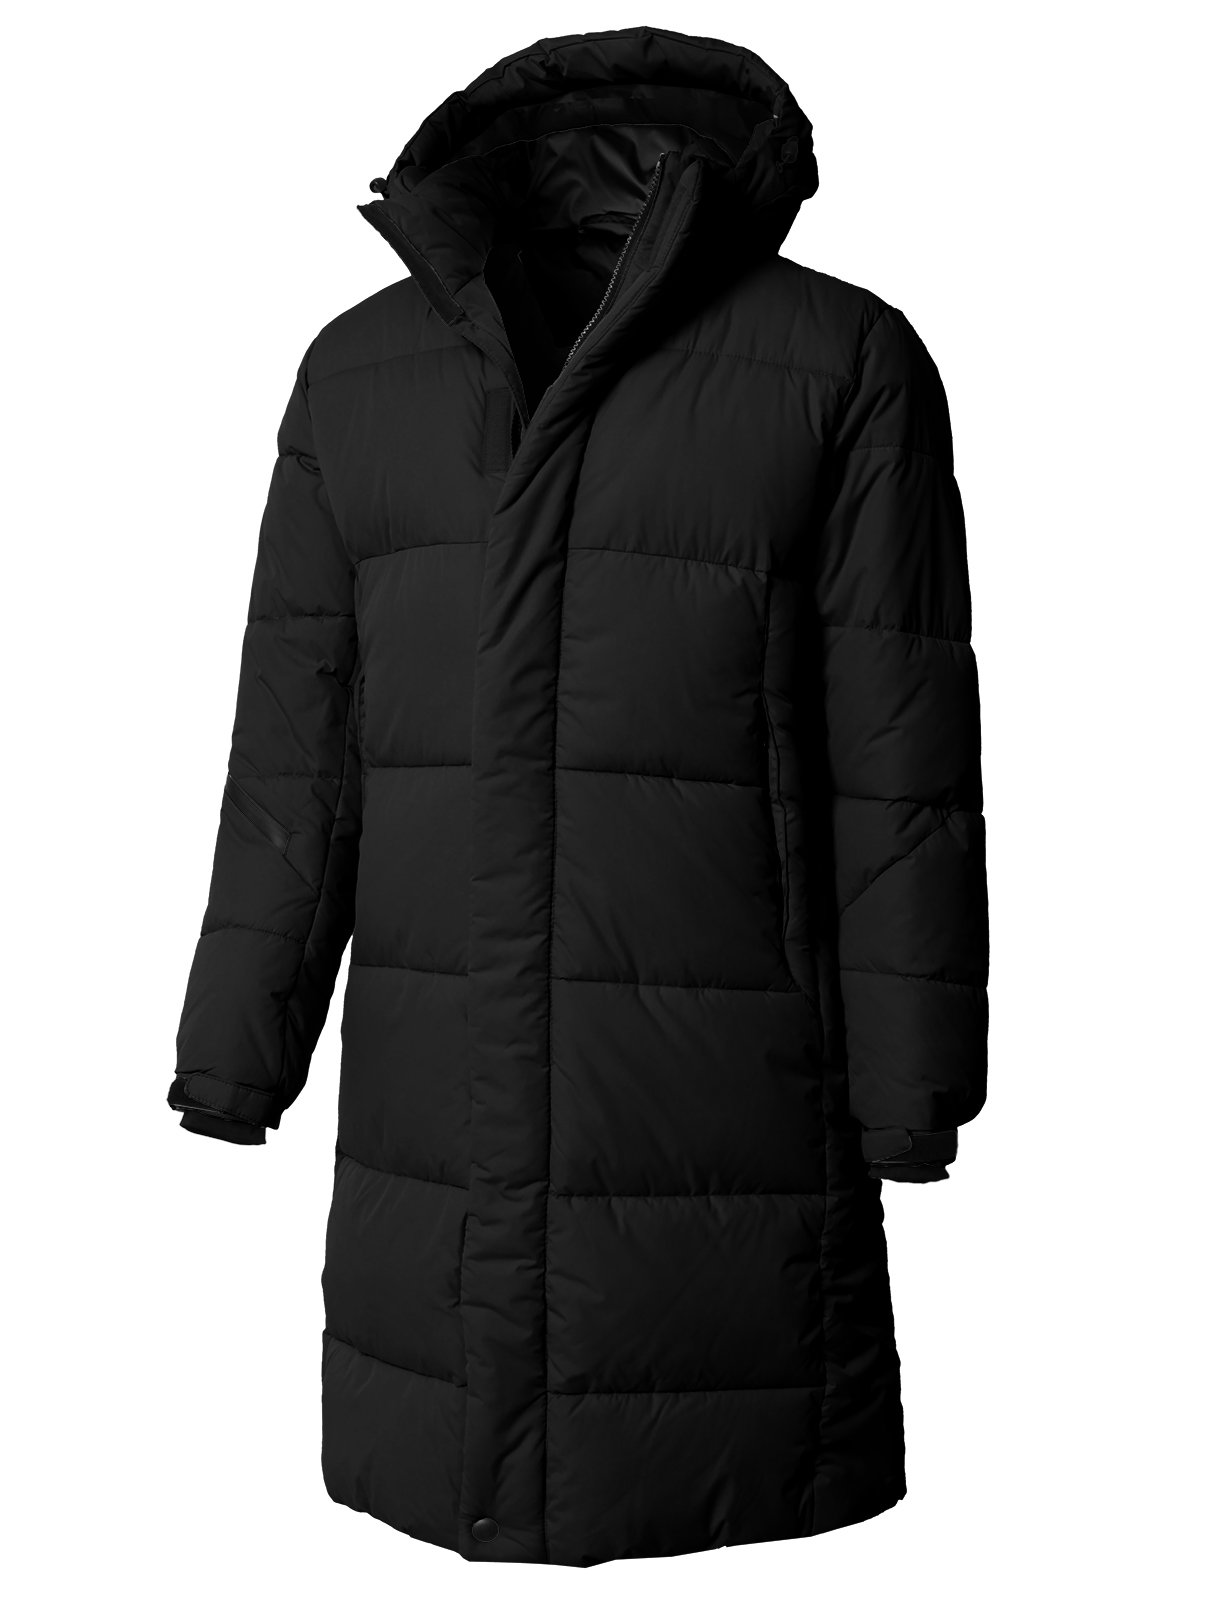 H2H Men's Parka Coat Winter Long Sections Loose Wadded Jacket Black US L/Asia XL (KMOJA0381)